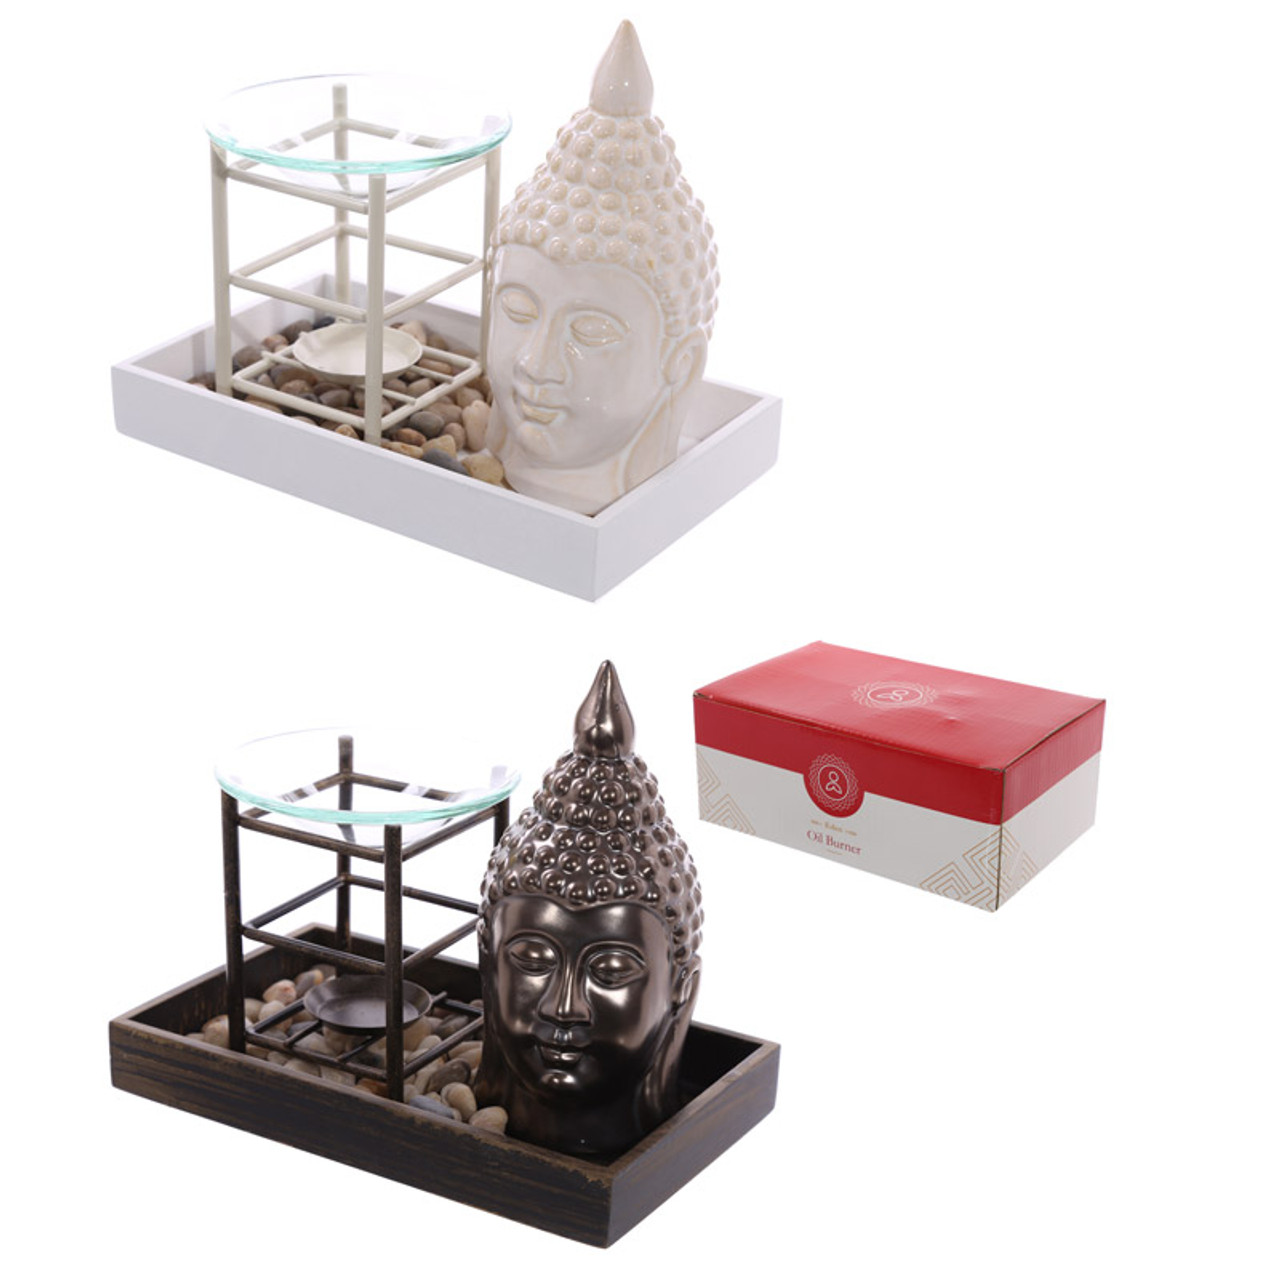 Ceramic Buddah Ornament And Premium Oil Burner Pebble Tray